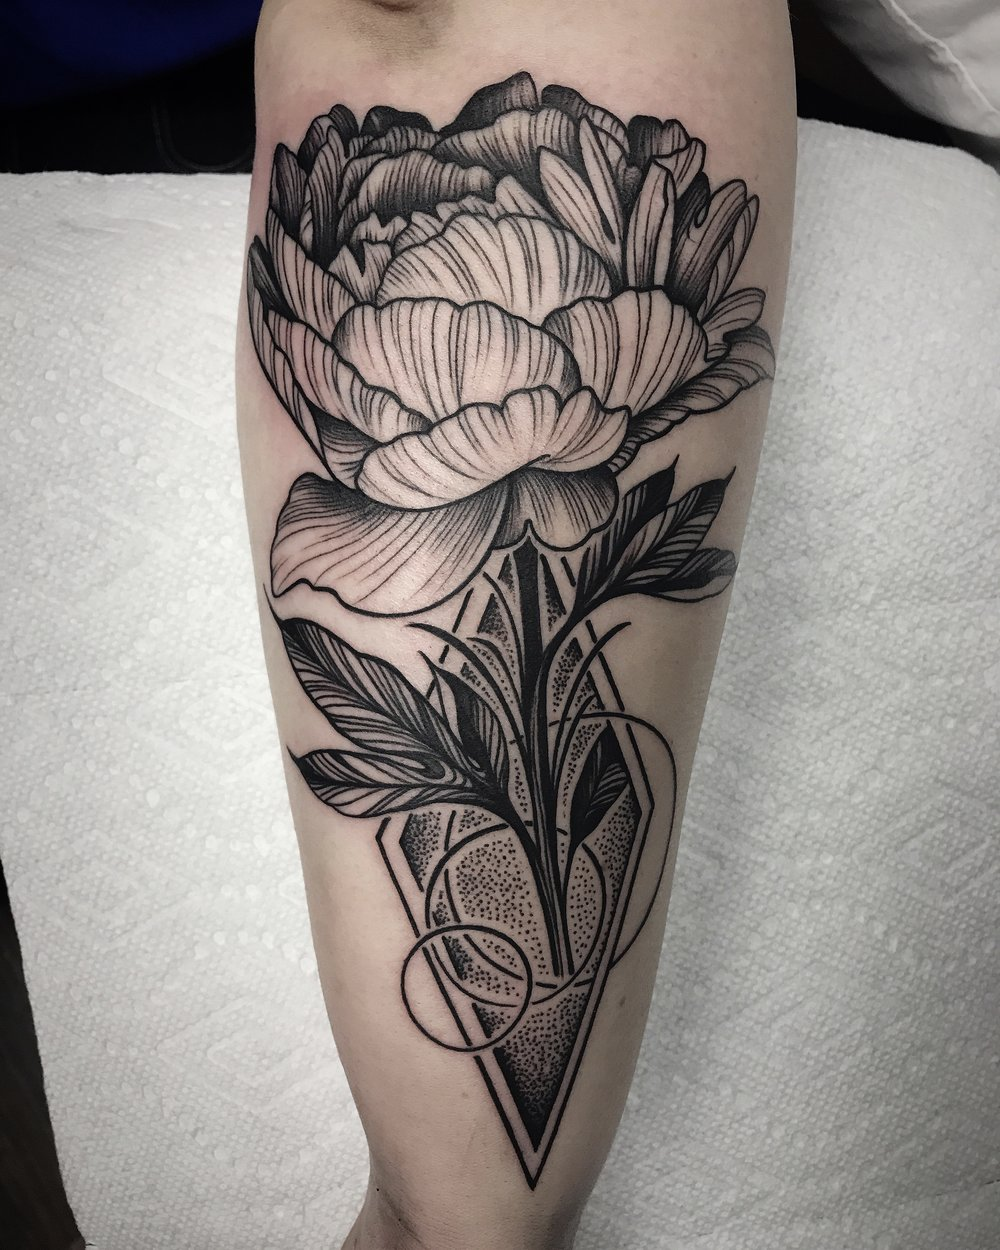 Blackwork Floral Peony Tattoo by David Mushaney